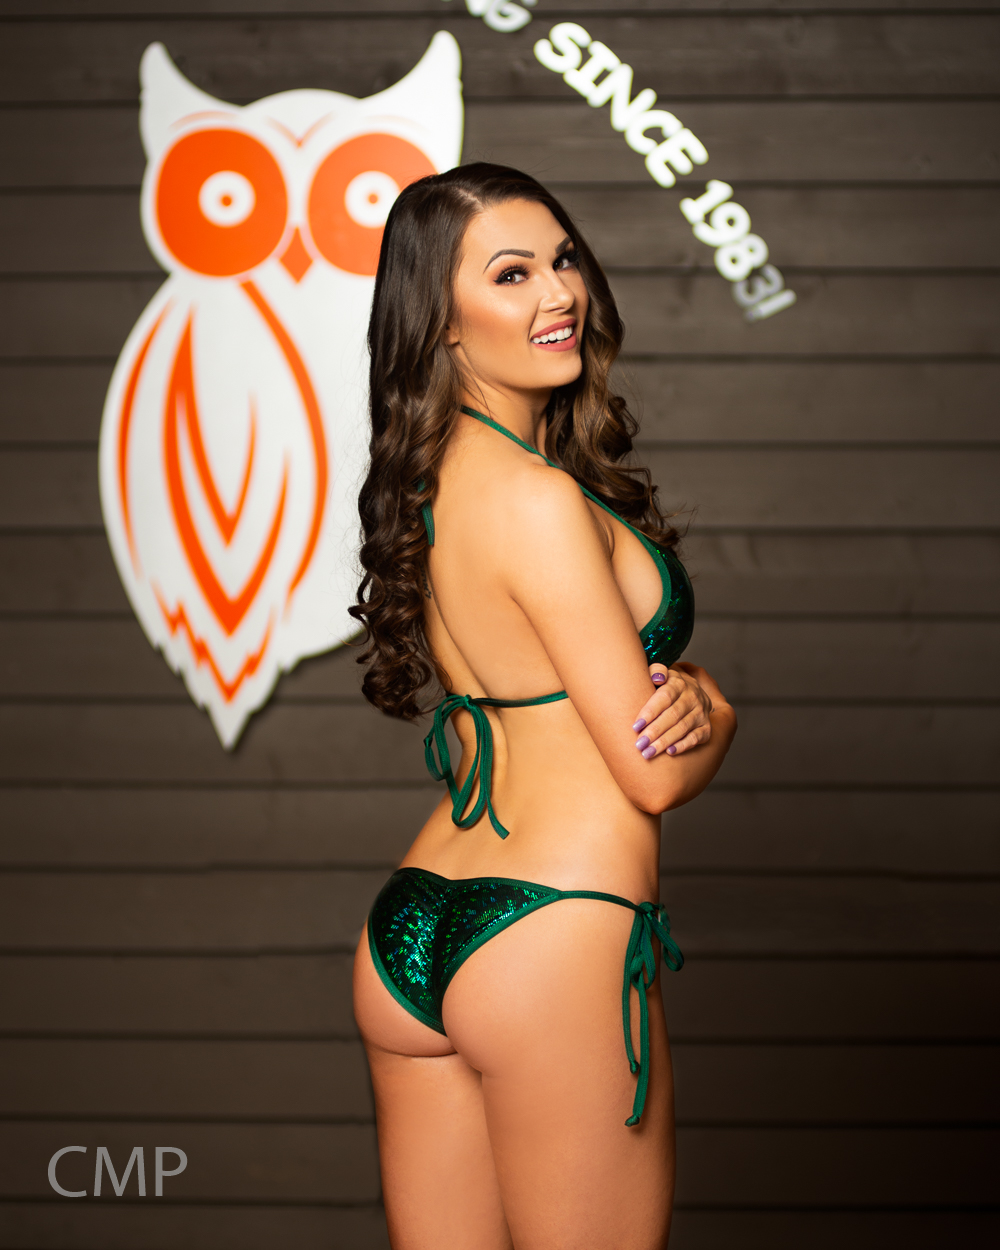 Hooters Model Amberly Hall